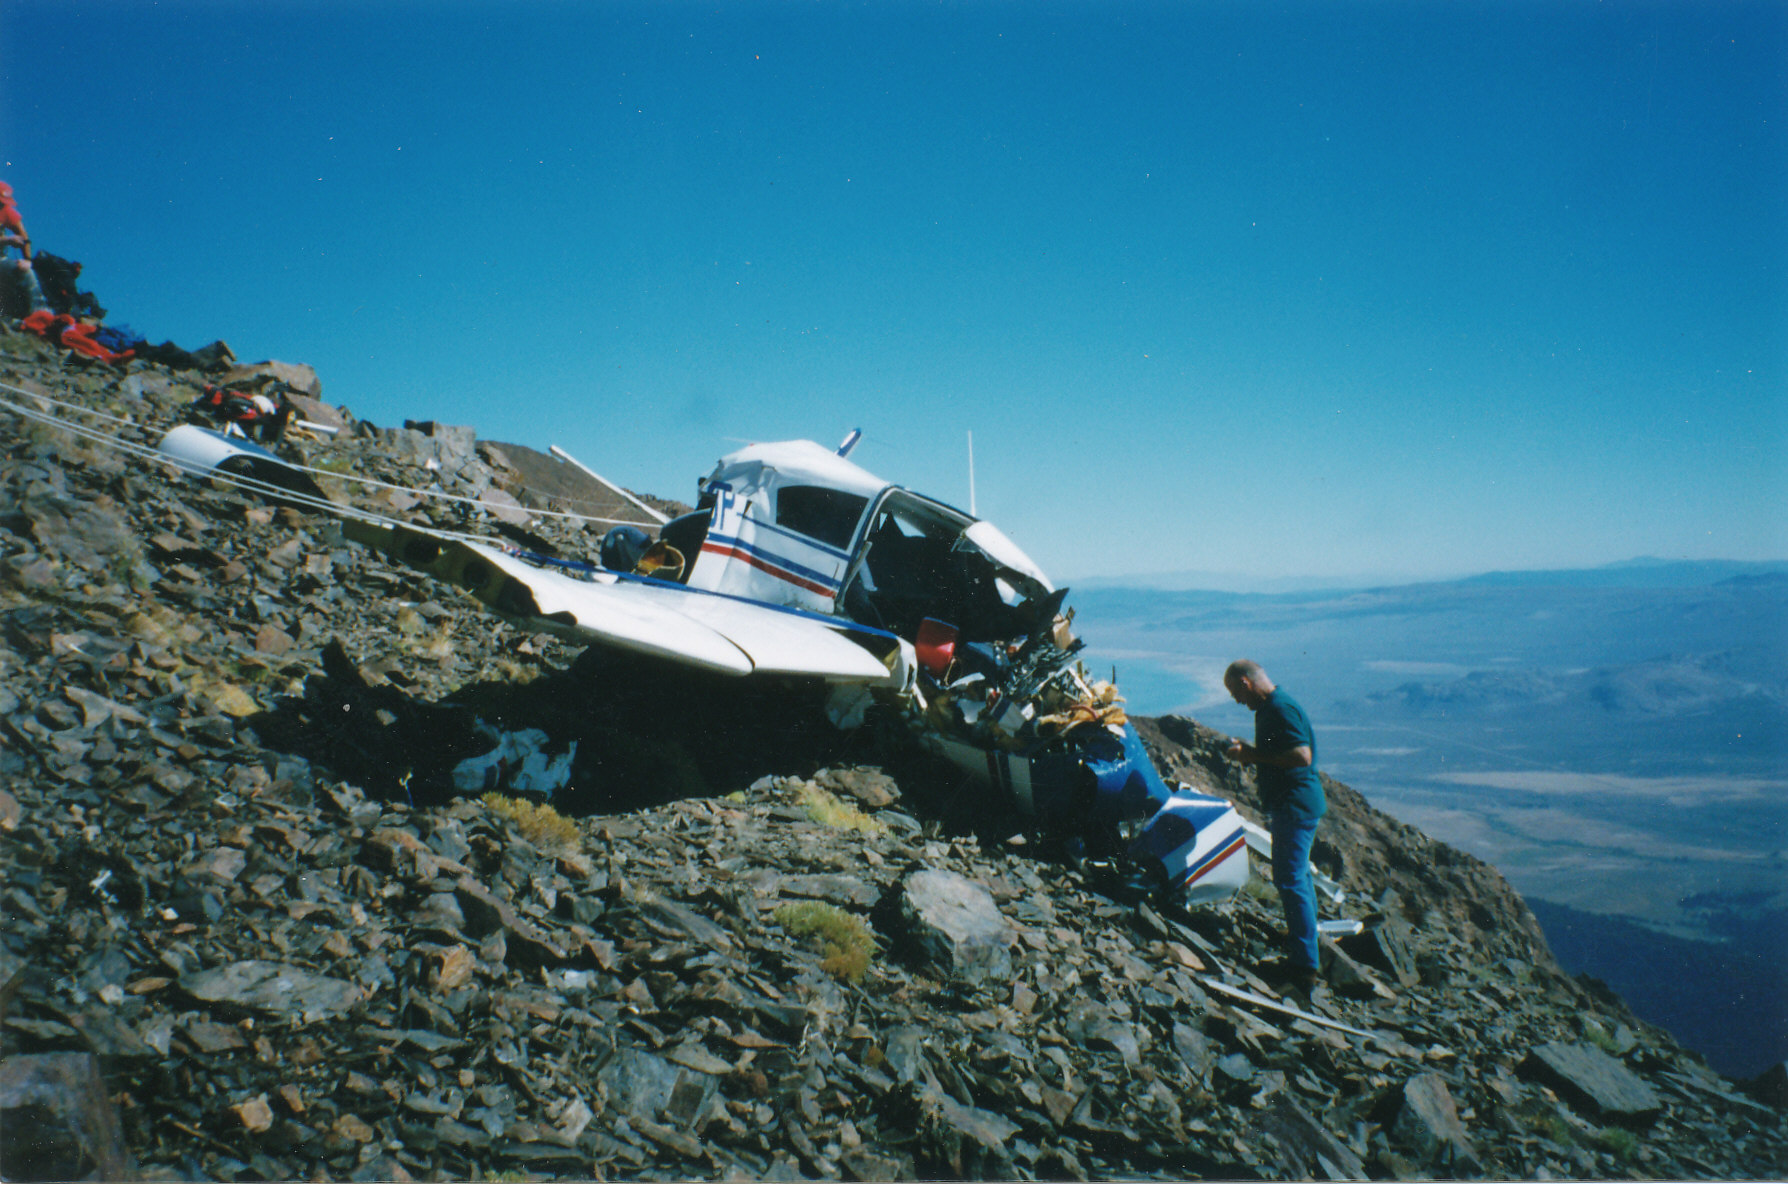 Recovering the remains of two victims of a plane crash at 11,000 feet